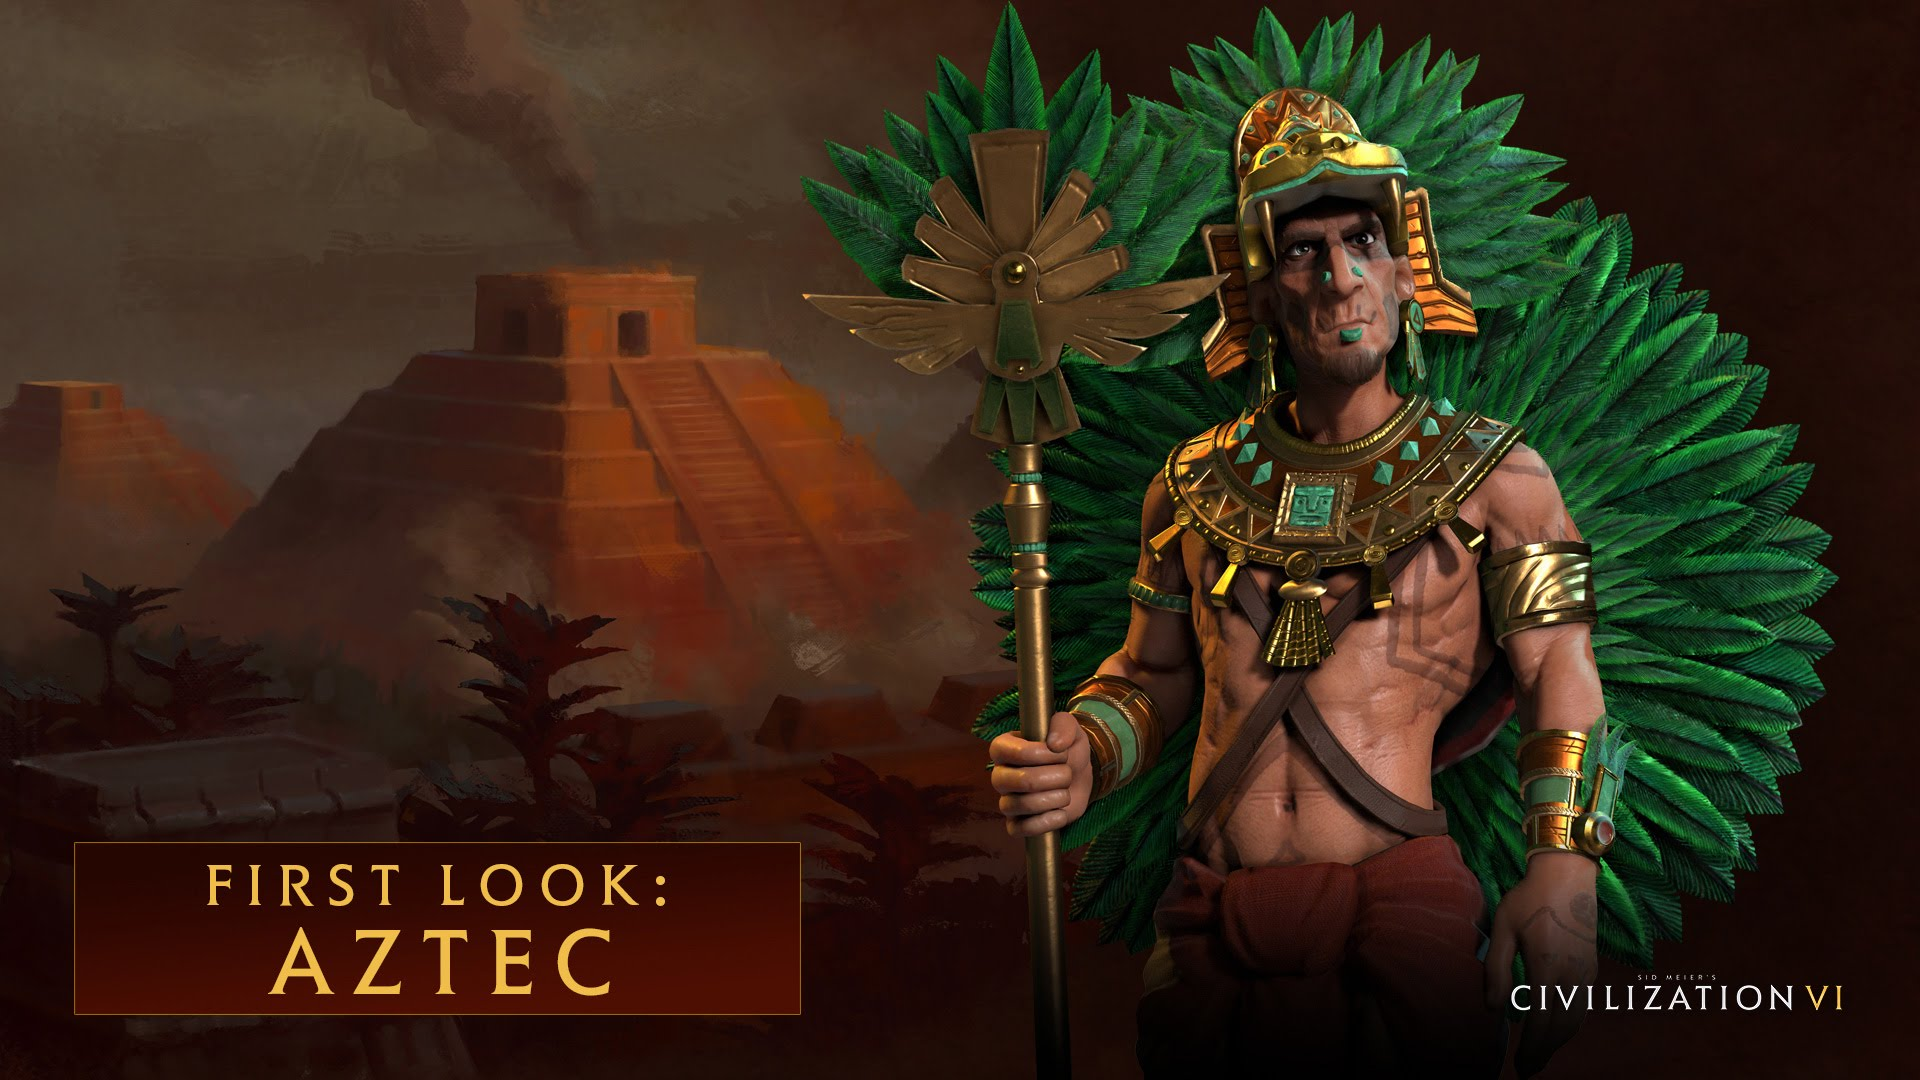 CIVILIZATION VI - First Look: Aztec